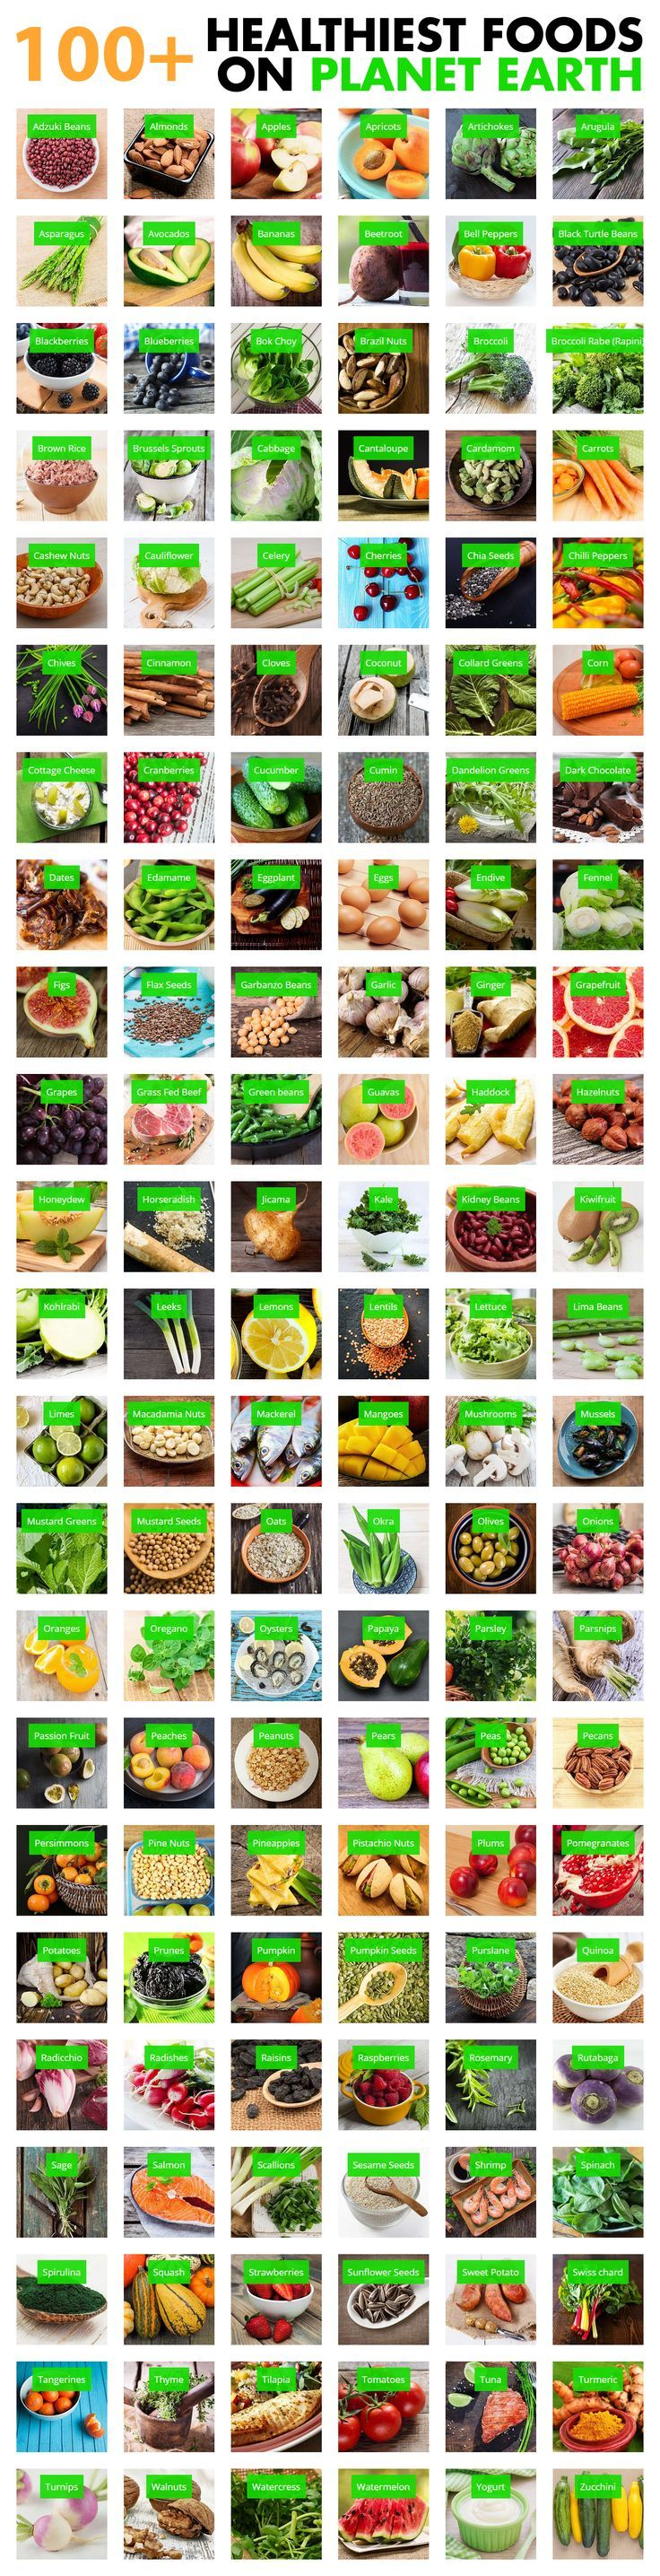 Use our healthy food finder and discover some new nutritious foods to add to your diet. You can use the tool to sort and filter foods based on different criteria. Give it a try! — Click HERE for Real Weight Loss Results -- http://realresultsin3weeks.info/